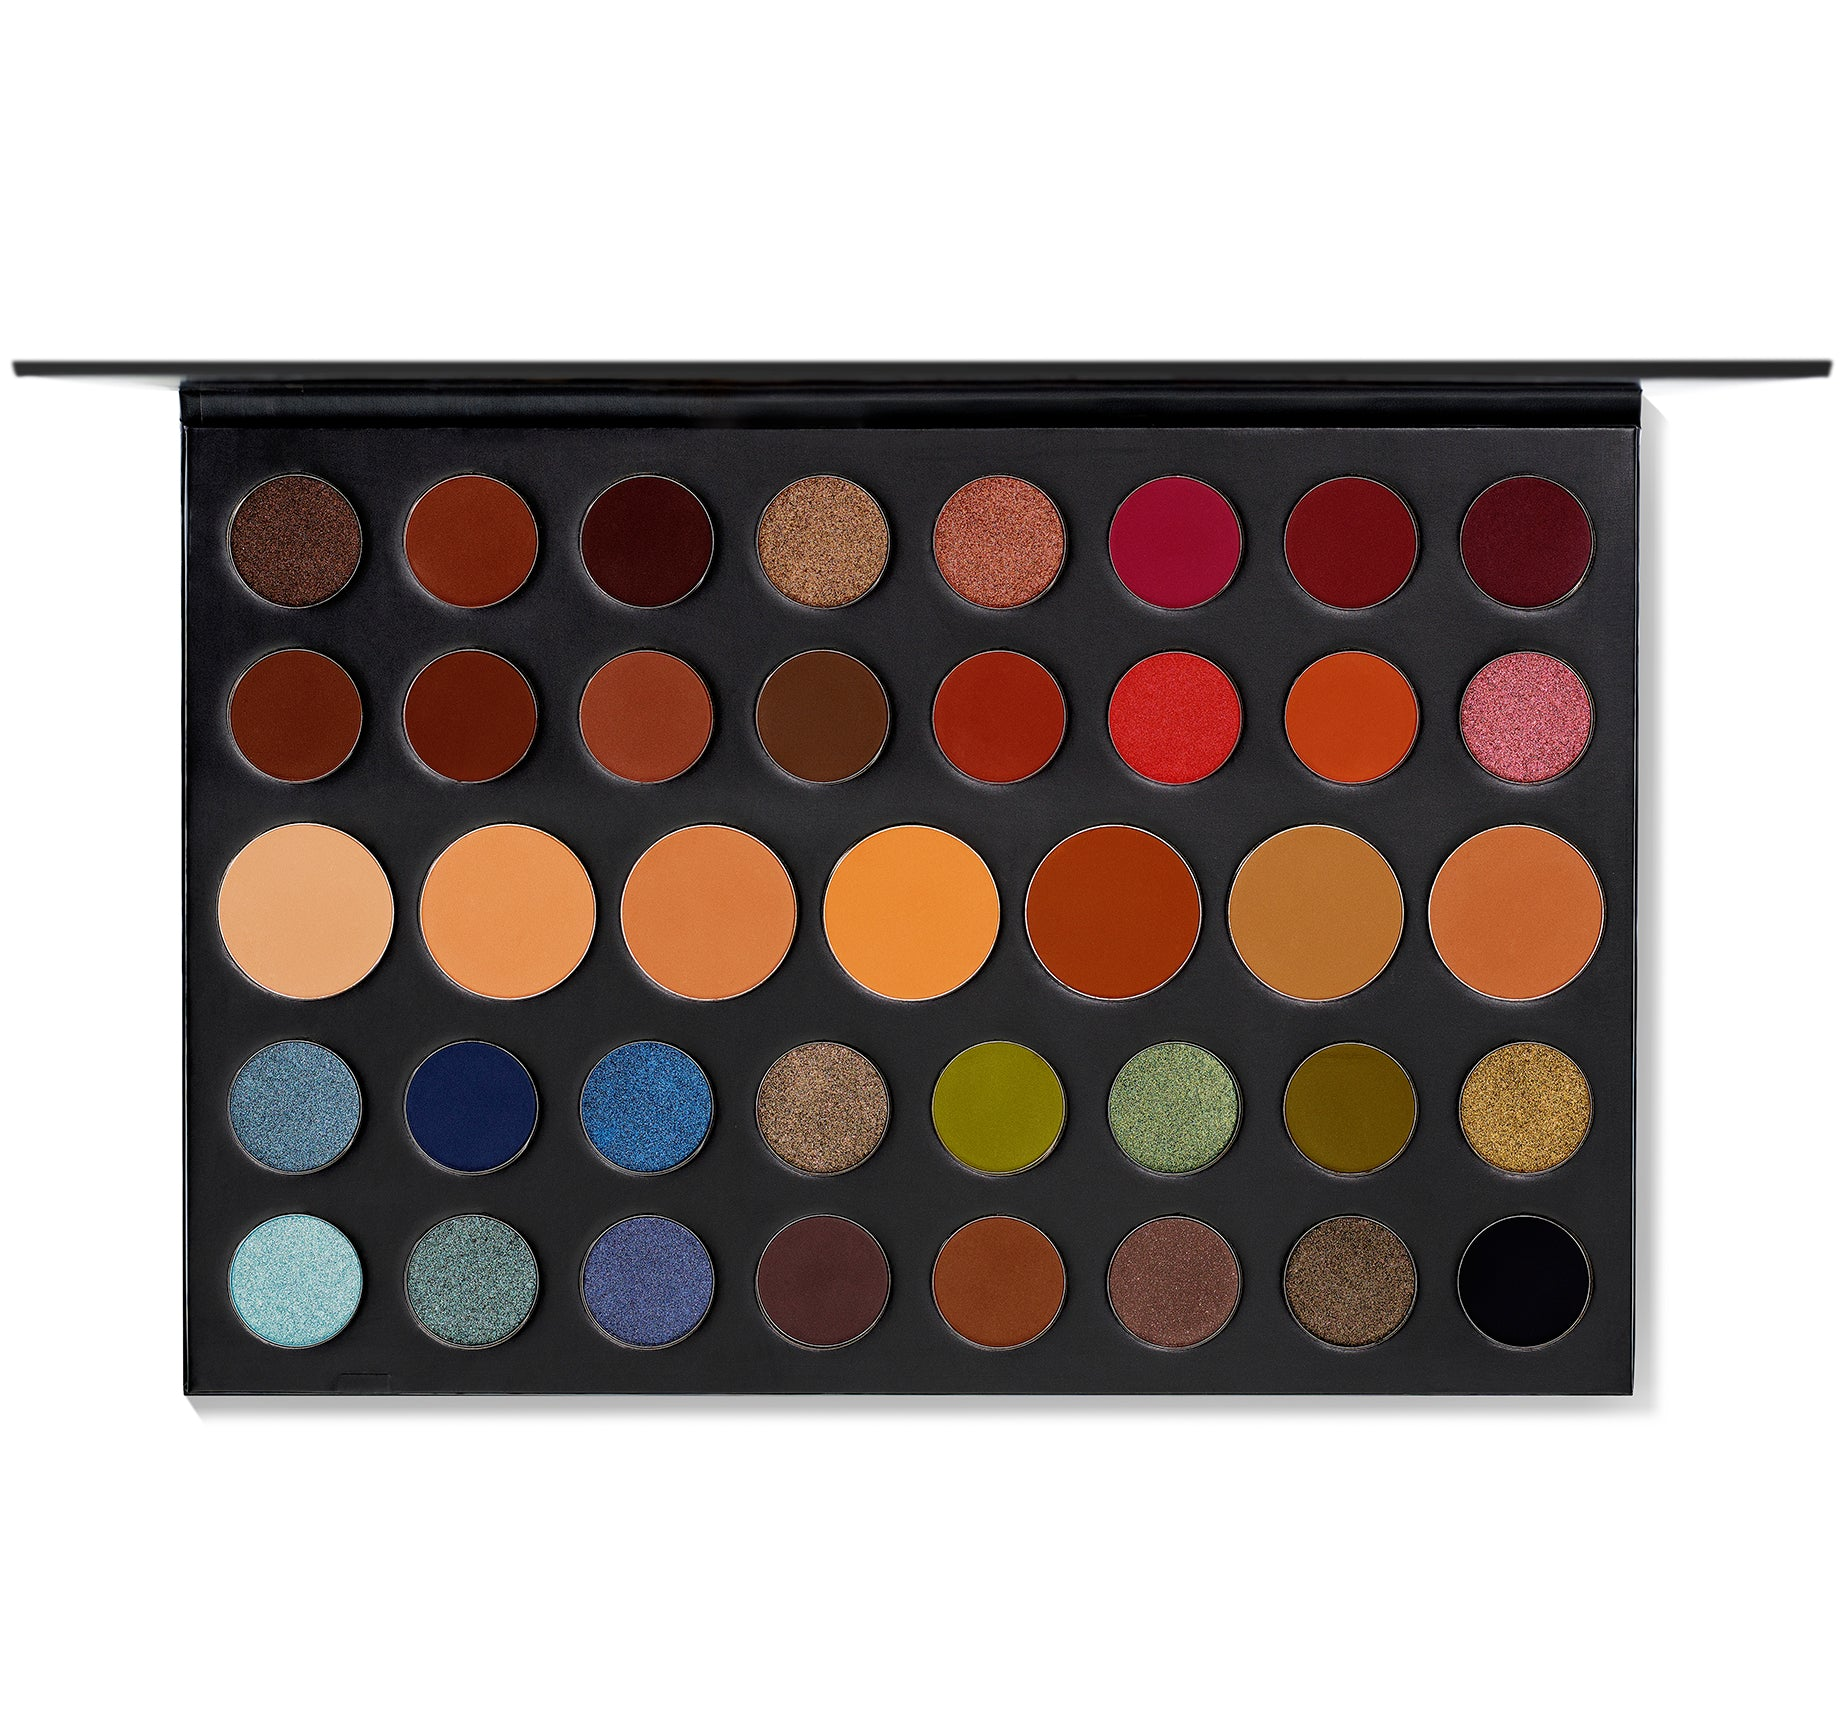 Morphe - 39A Dare to Create Artistry Palette